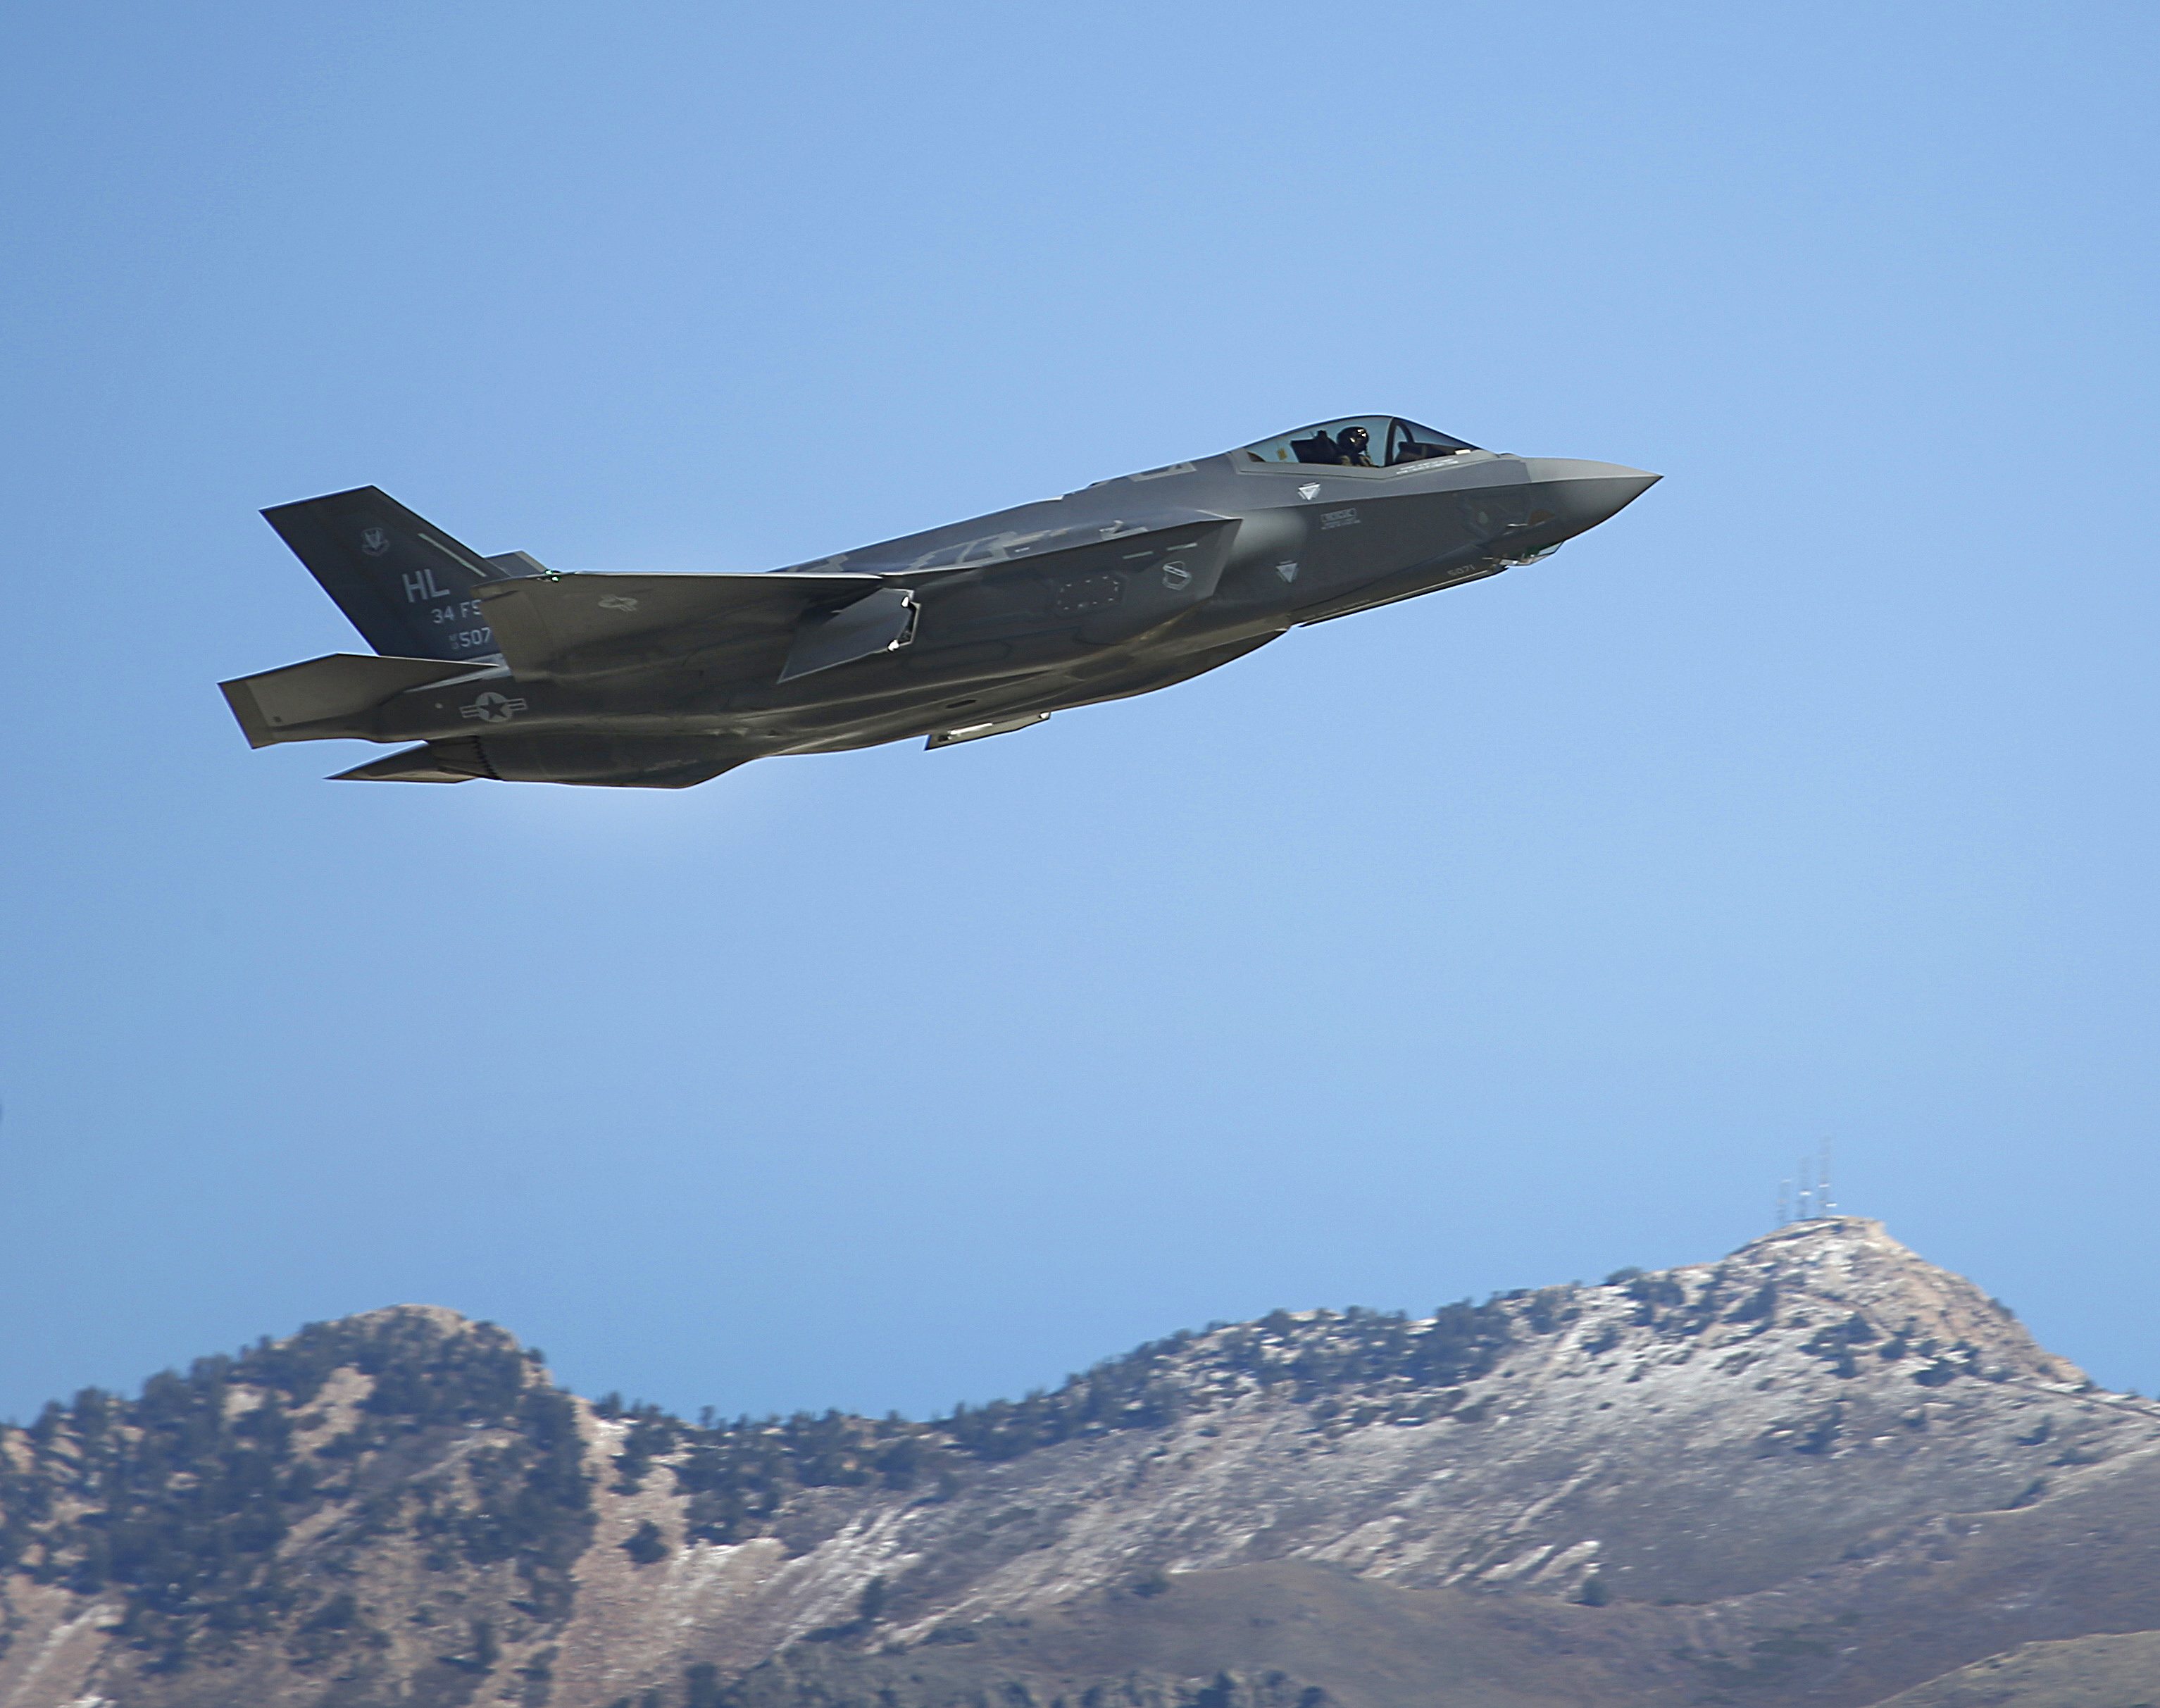 A Lockheed Martin Corp. F-35A jet flies during a training mission in Hill Air Force Base, Utah, U.S., on Friday, Oct. 21, 2016.